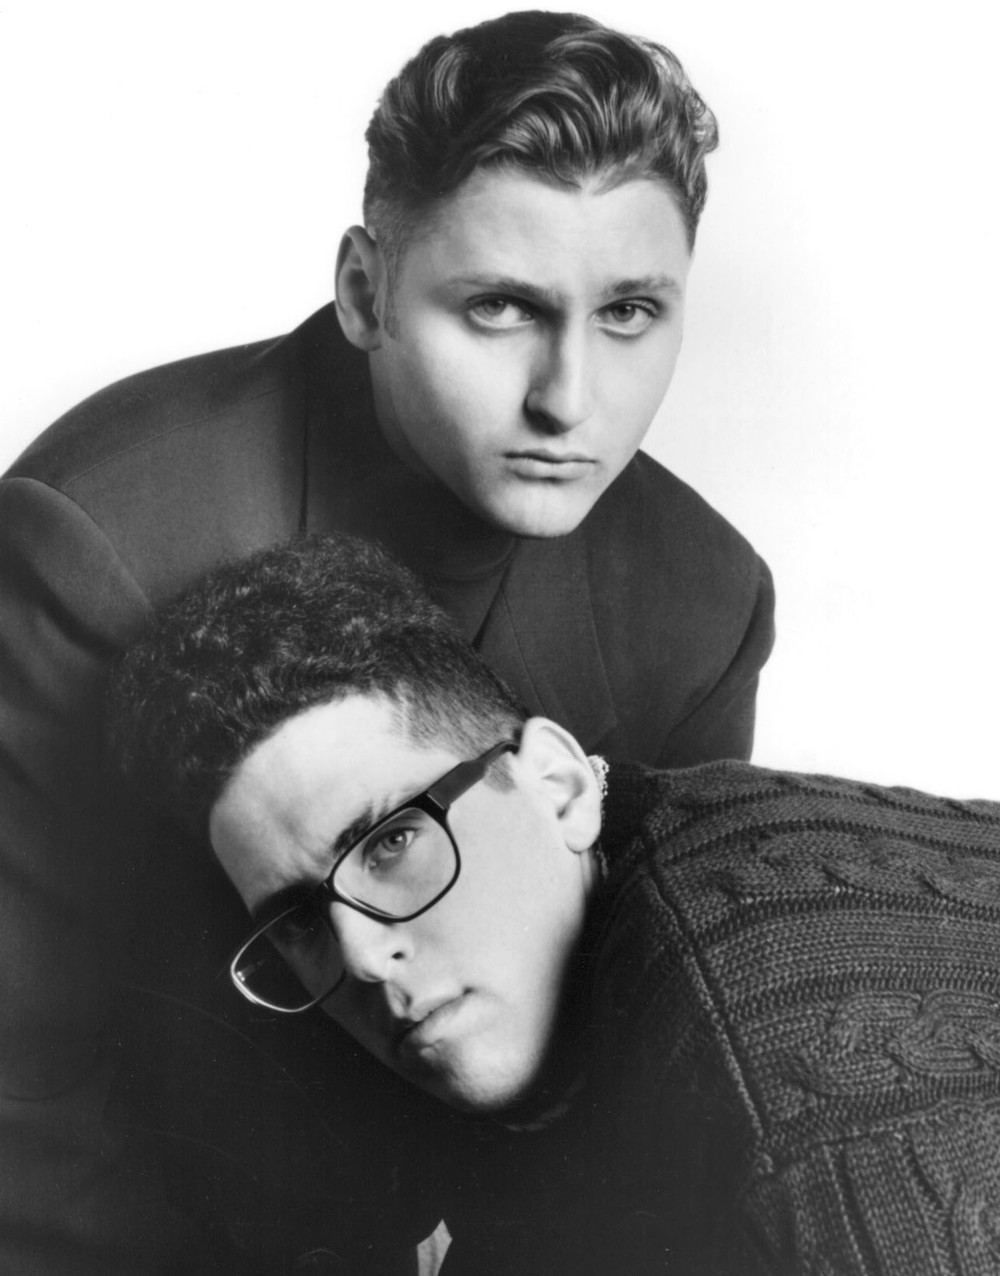 3rd Bass On Spotify